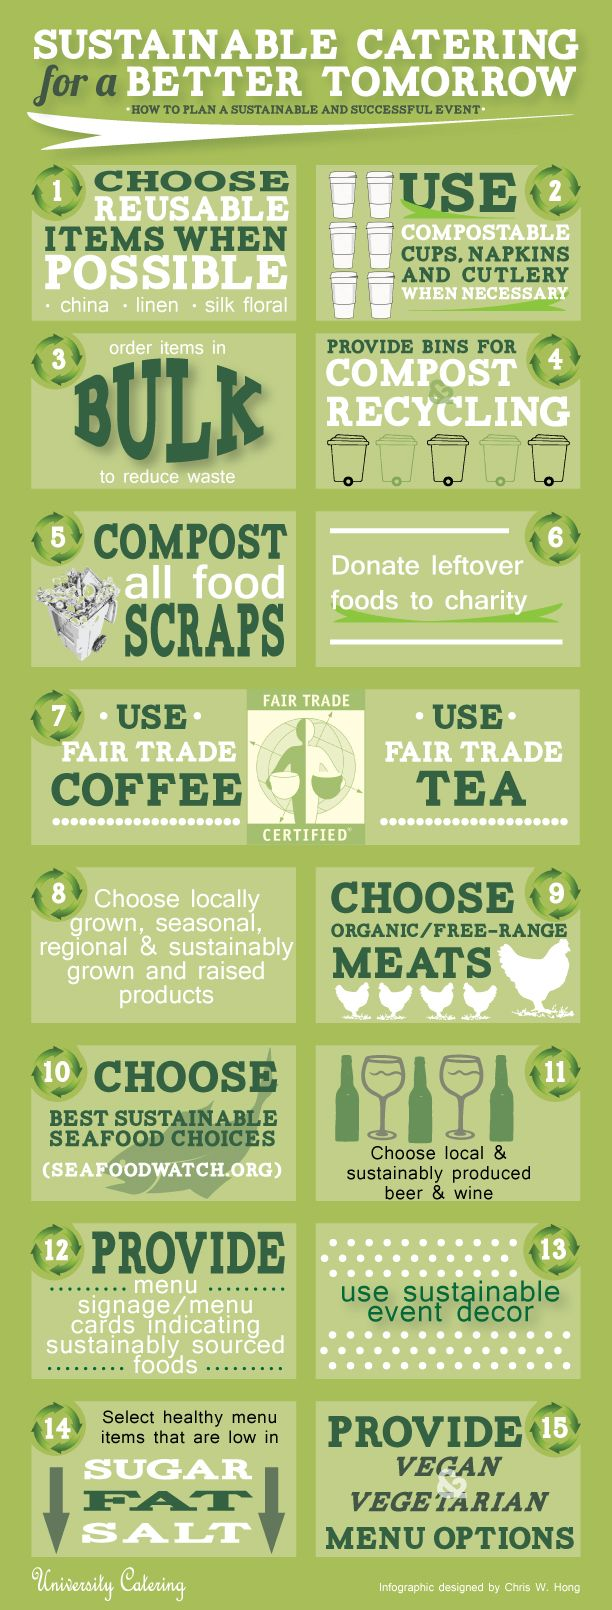 Sustainable Catering http://www.eventmanagerblog.com/uploads/2014/02/sustainable-catering-infographic-full.jpg